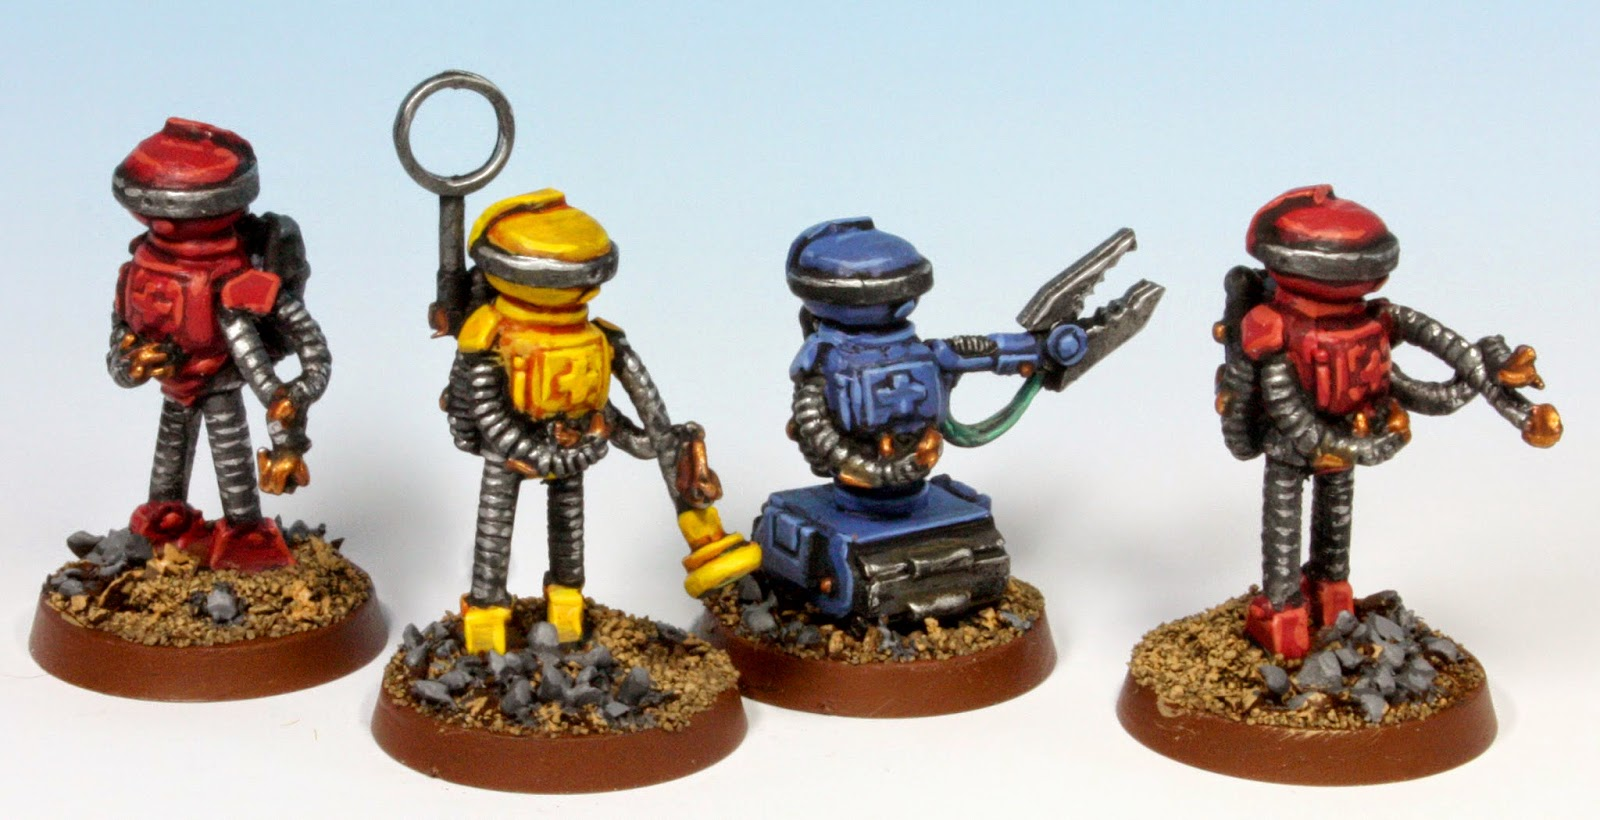 Stroknor macekiller salvage robot team these models are very old gamma world miniatures by grenadier they appealed to me because they are from the same era as my other models and fit in very publicscrutiny Image collections